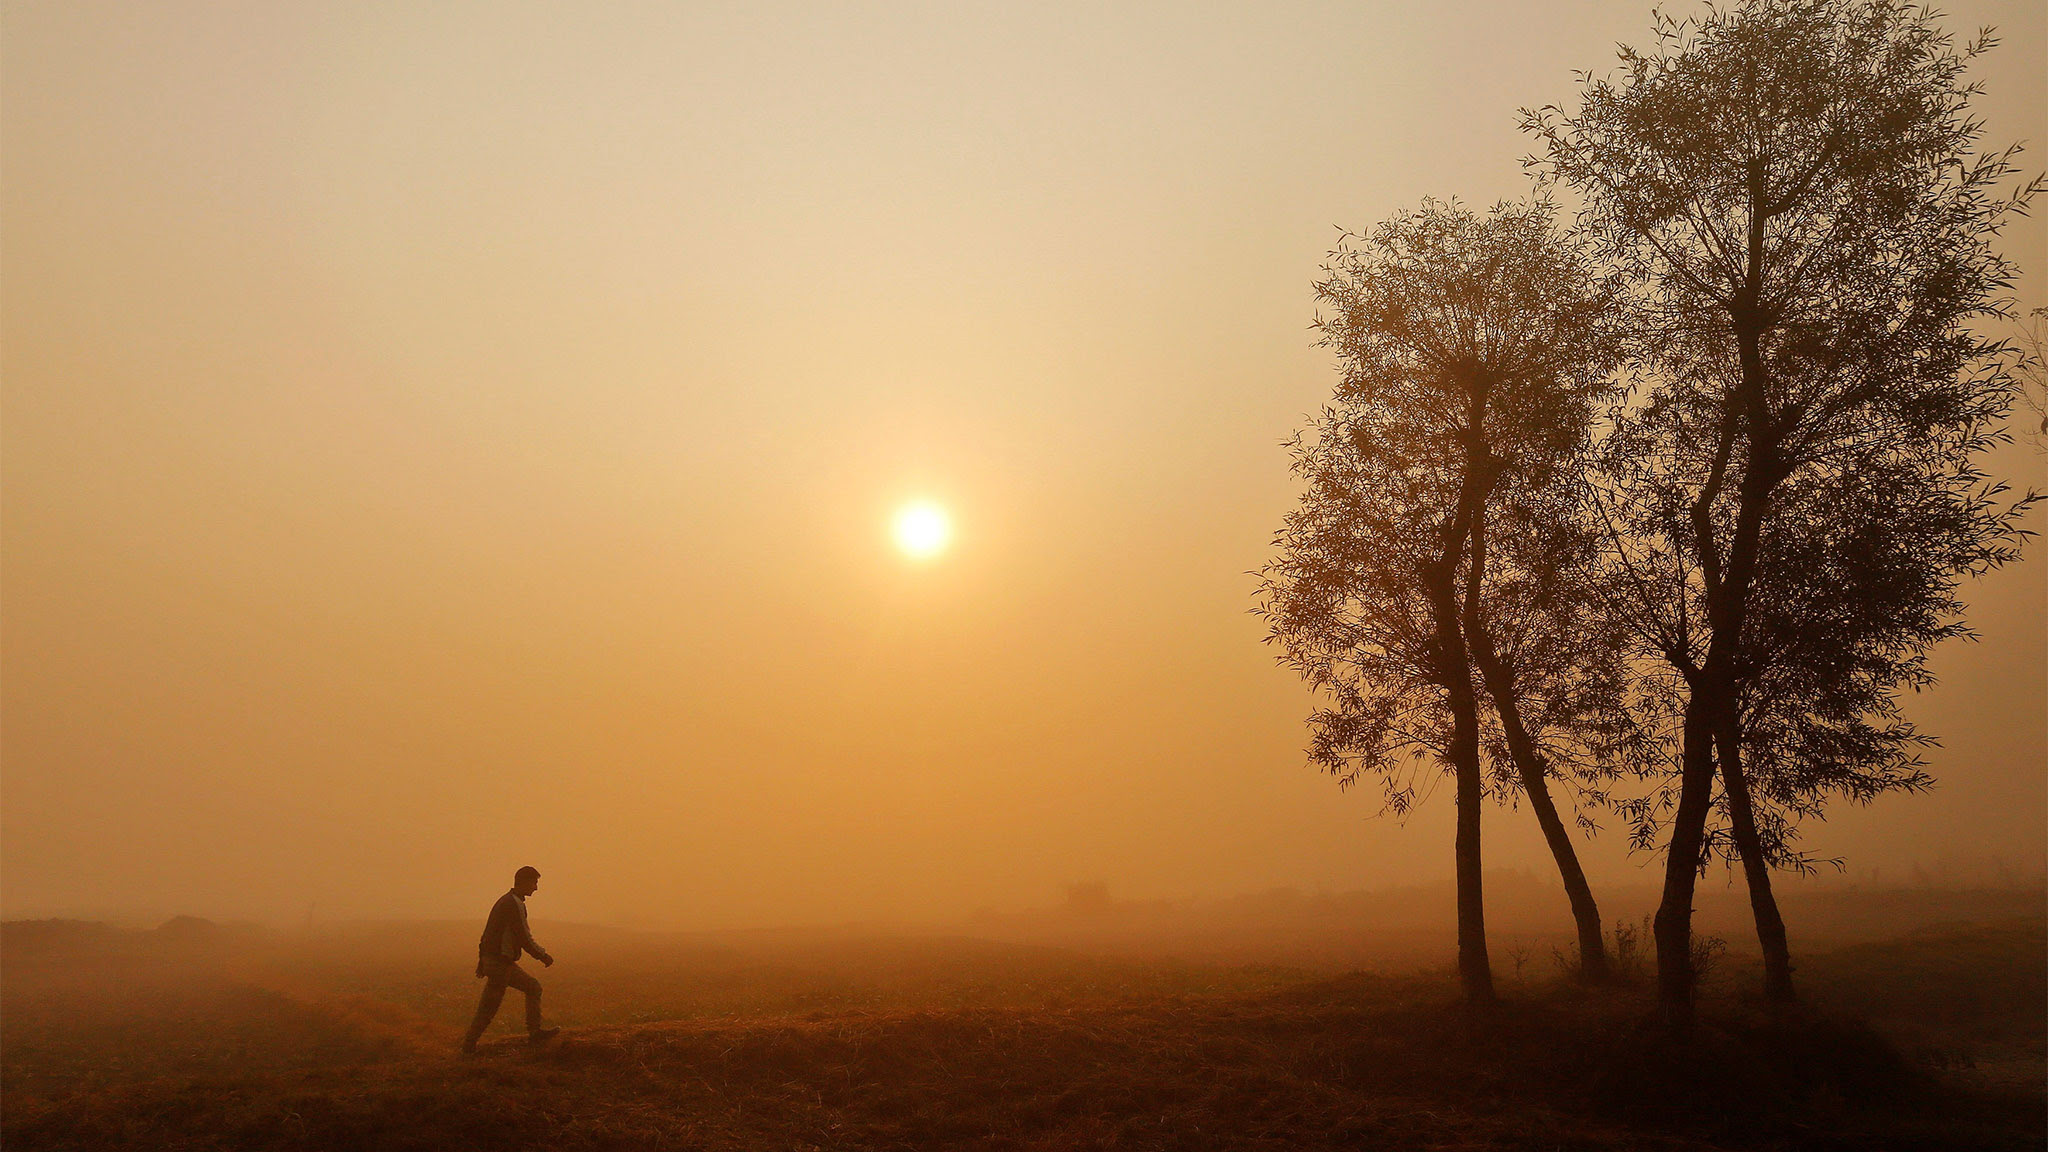 A boy walks through a paddy field on a foggy morning on the outskirts of Srinagar